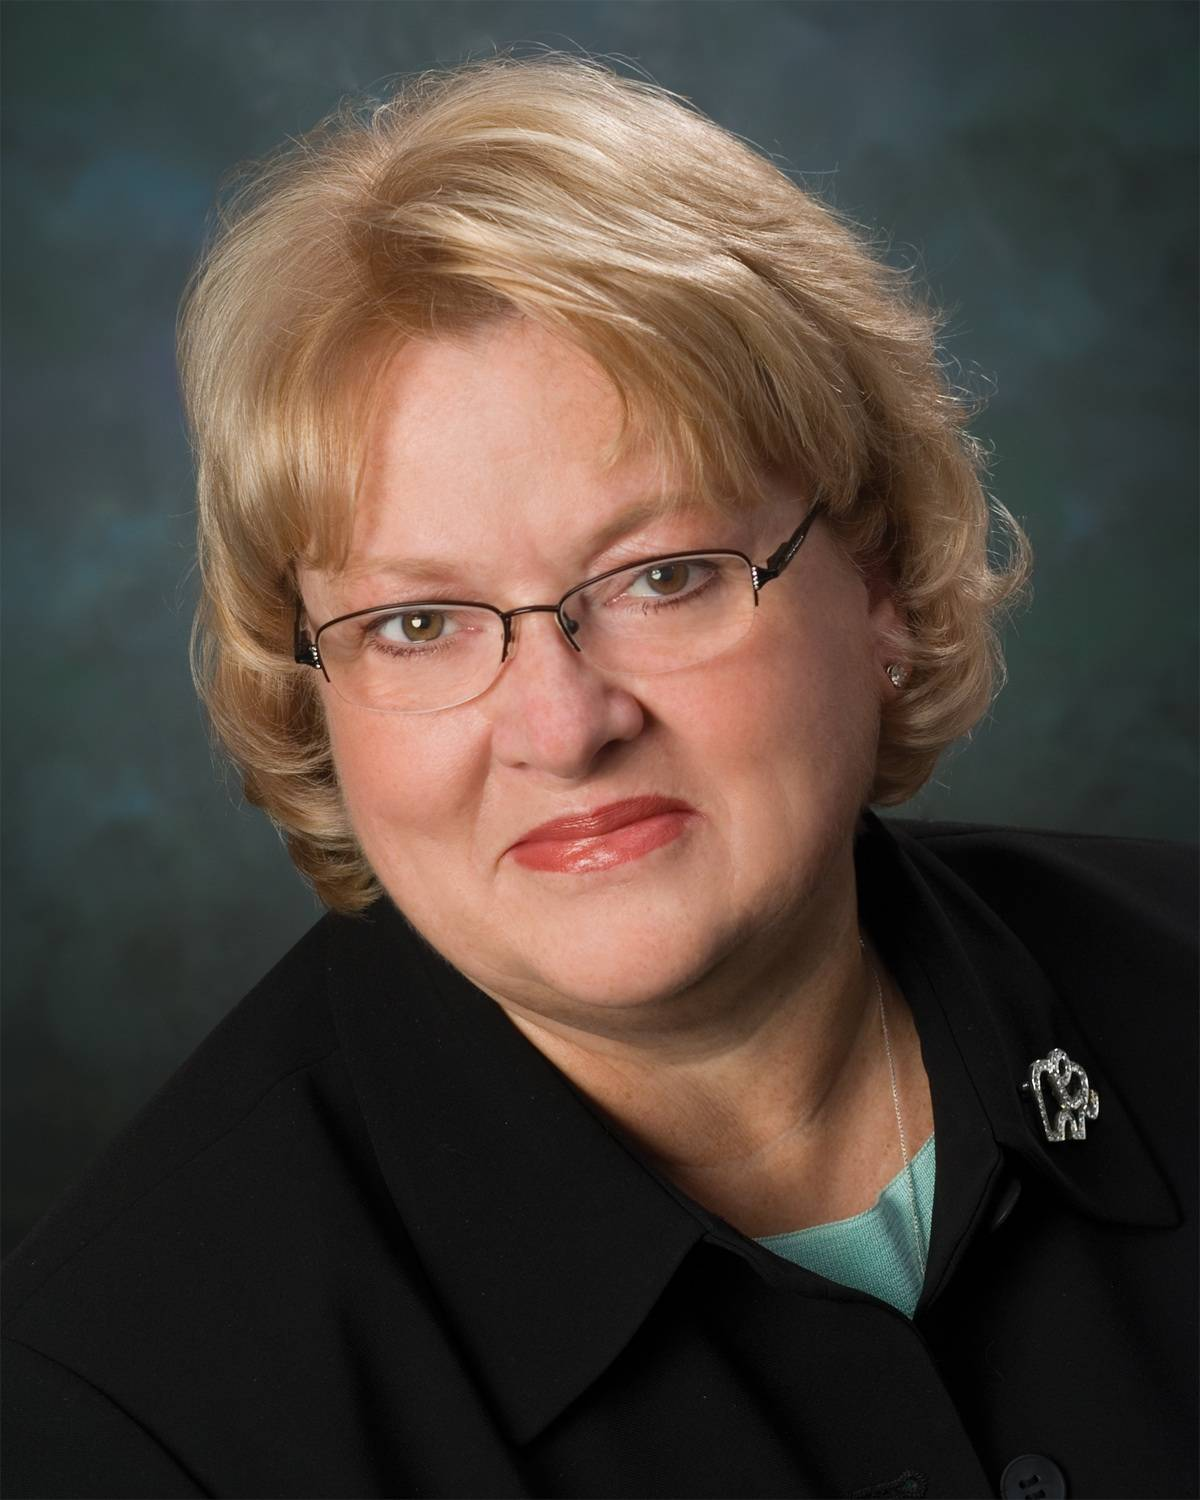 Linda Pedersen, running for Lake County board District 1